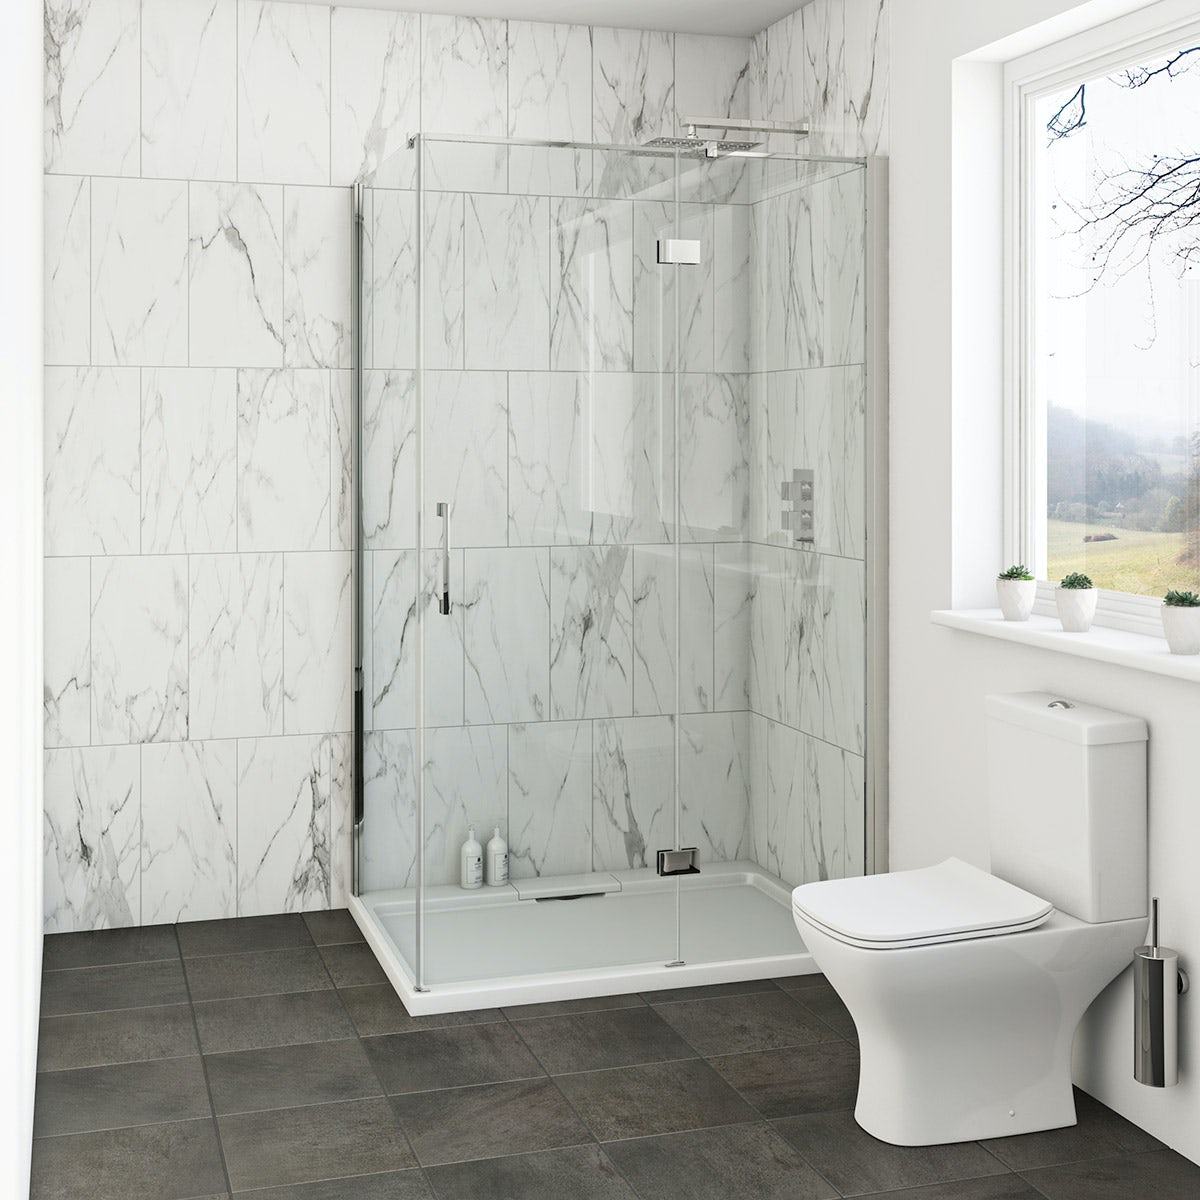 Mode Cooper 8mm hinged easy clean shower enclosure 1200 x 800